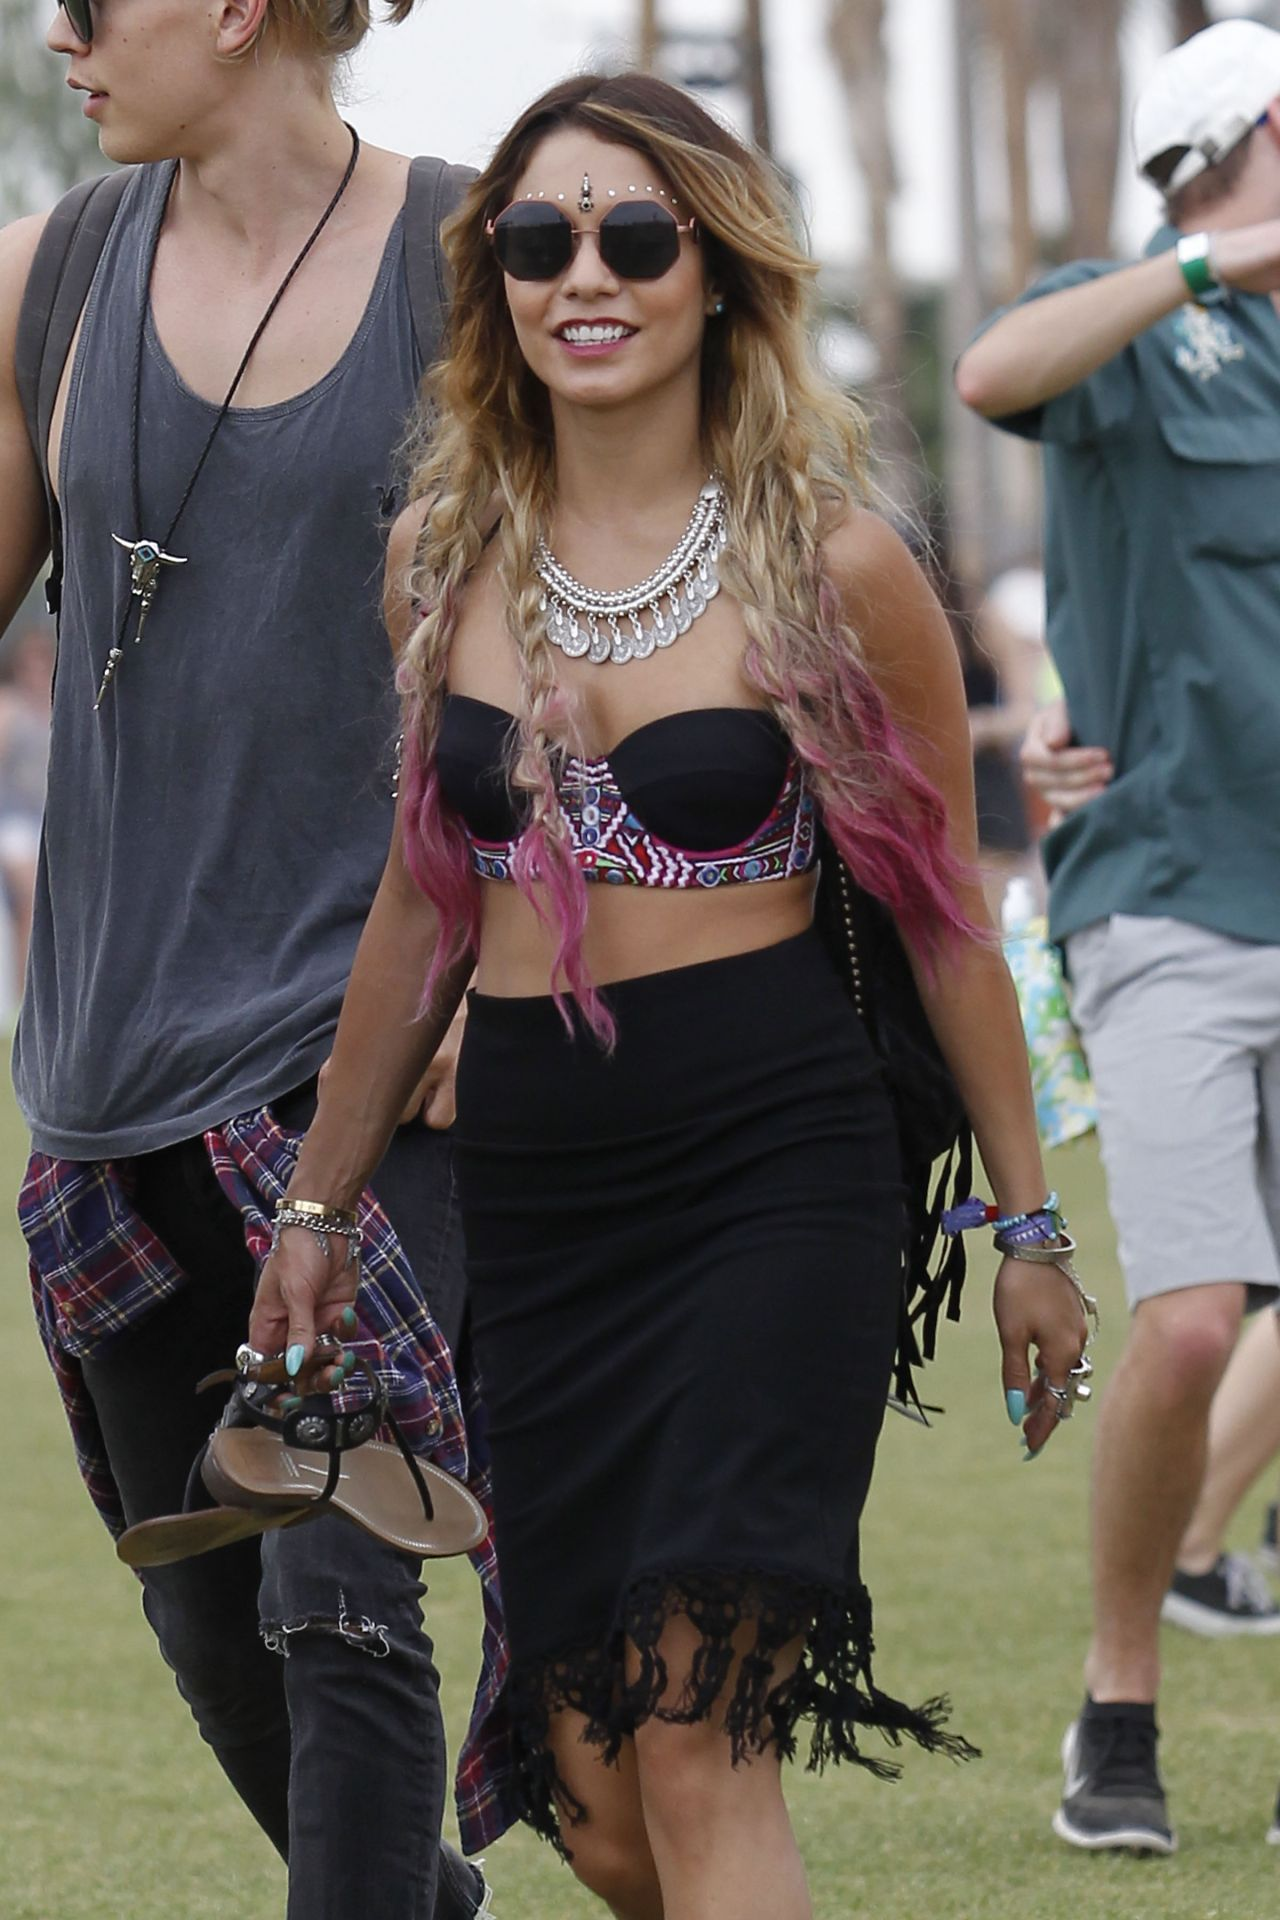 vanessa-hudgens-coachella-music-festival-april-18-2014_1